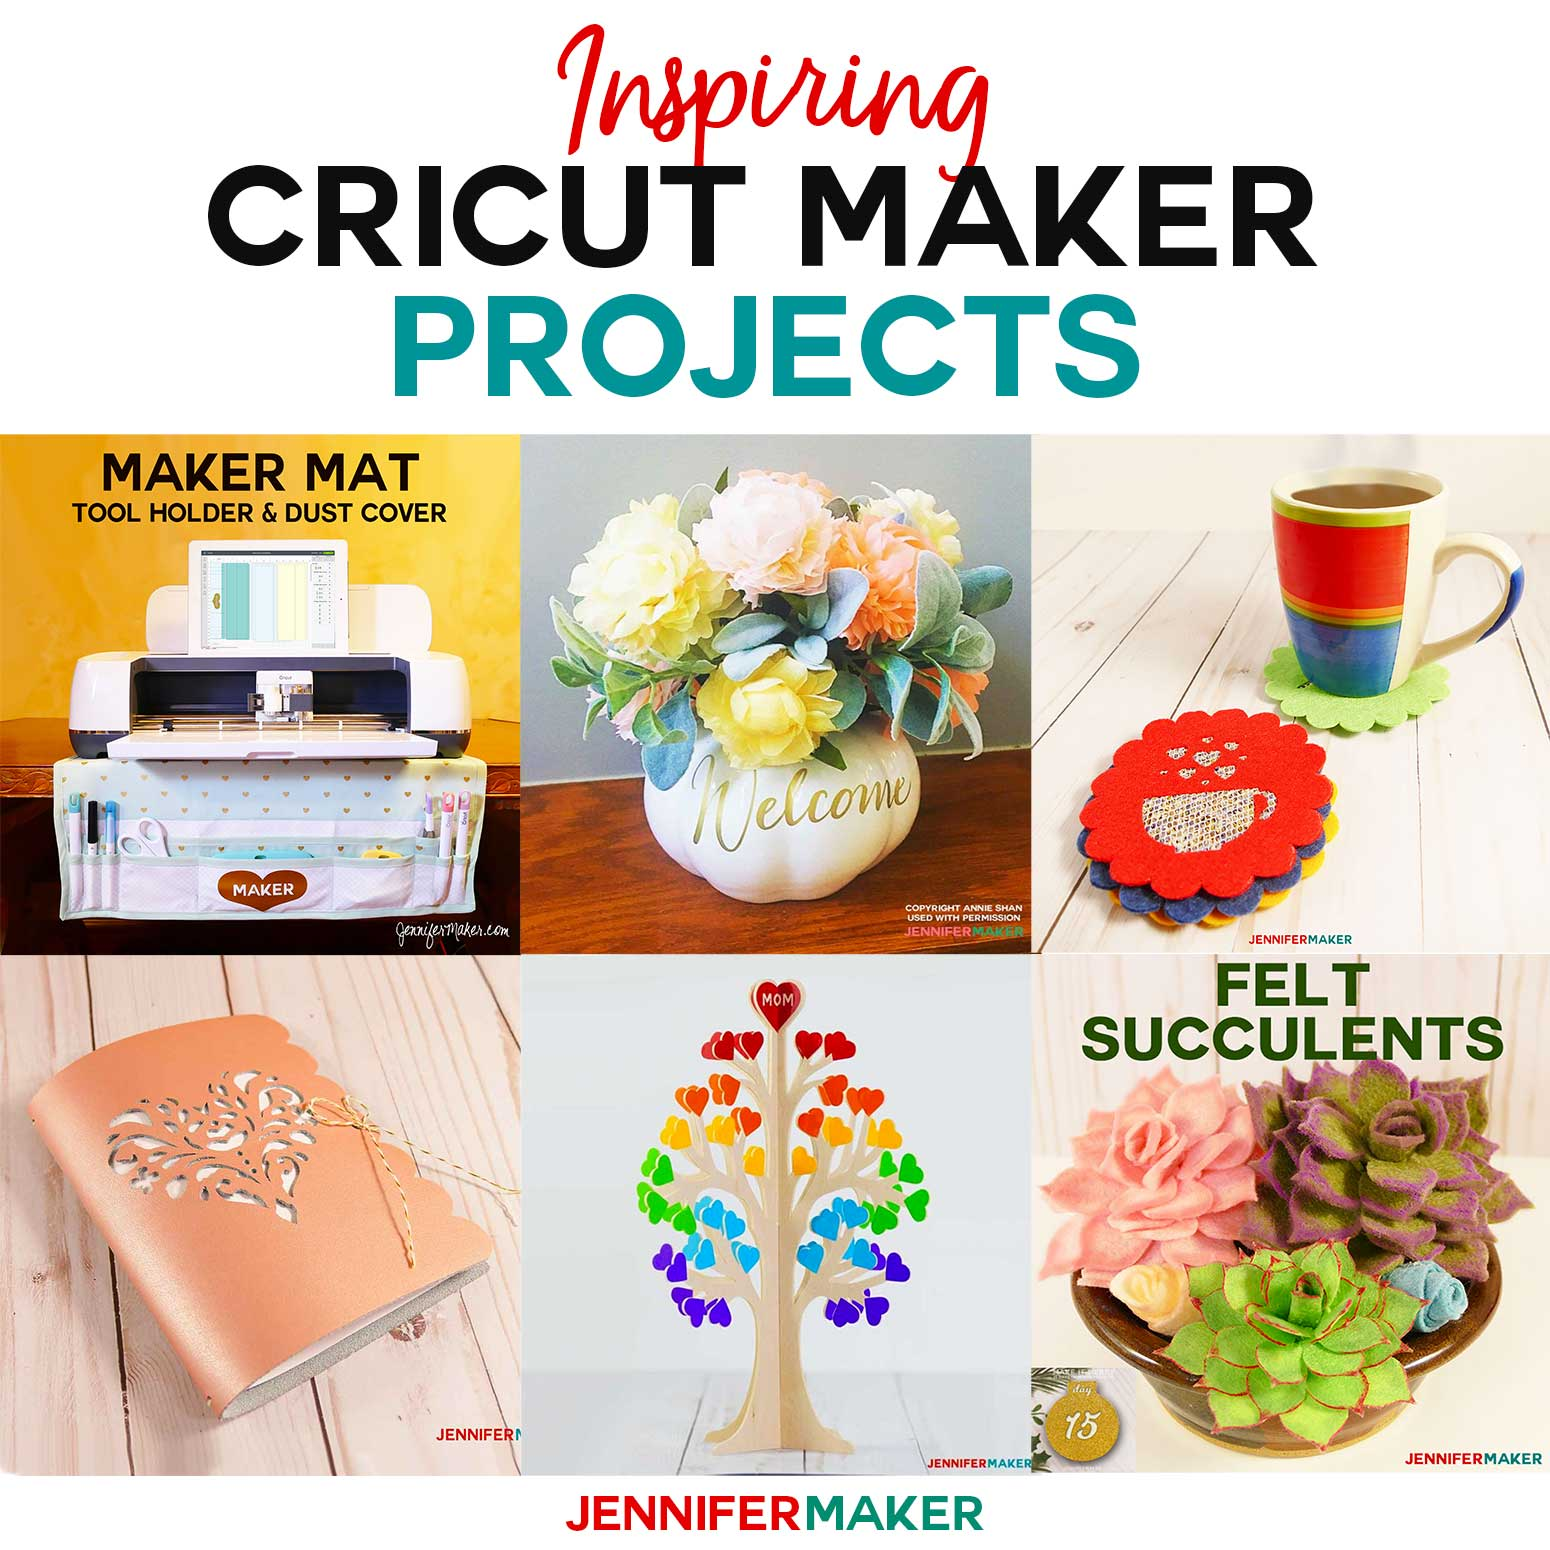 These Cricut Maker Projects will inspire you to make amazing things with and gifts your cutting machine! #cricutmaker #svgcutfiles #felt #cricutprojects